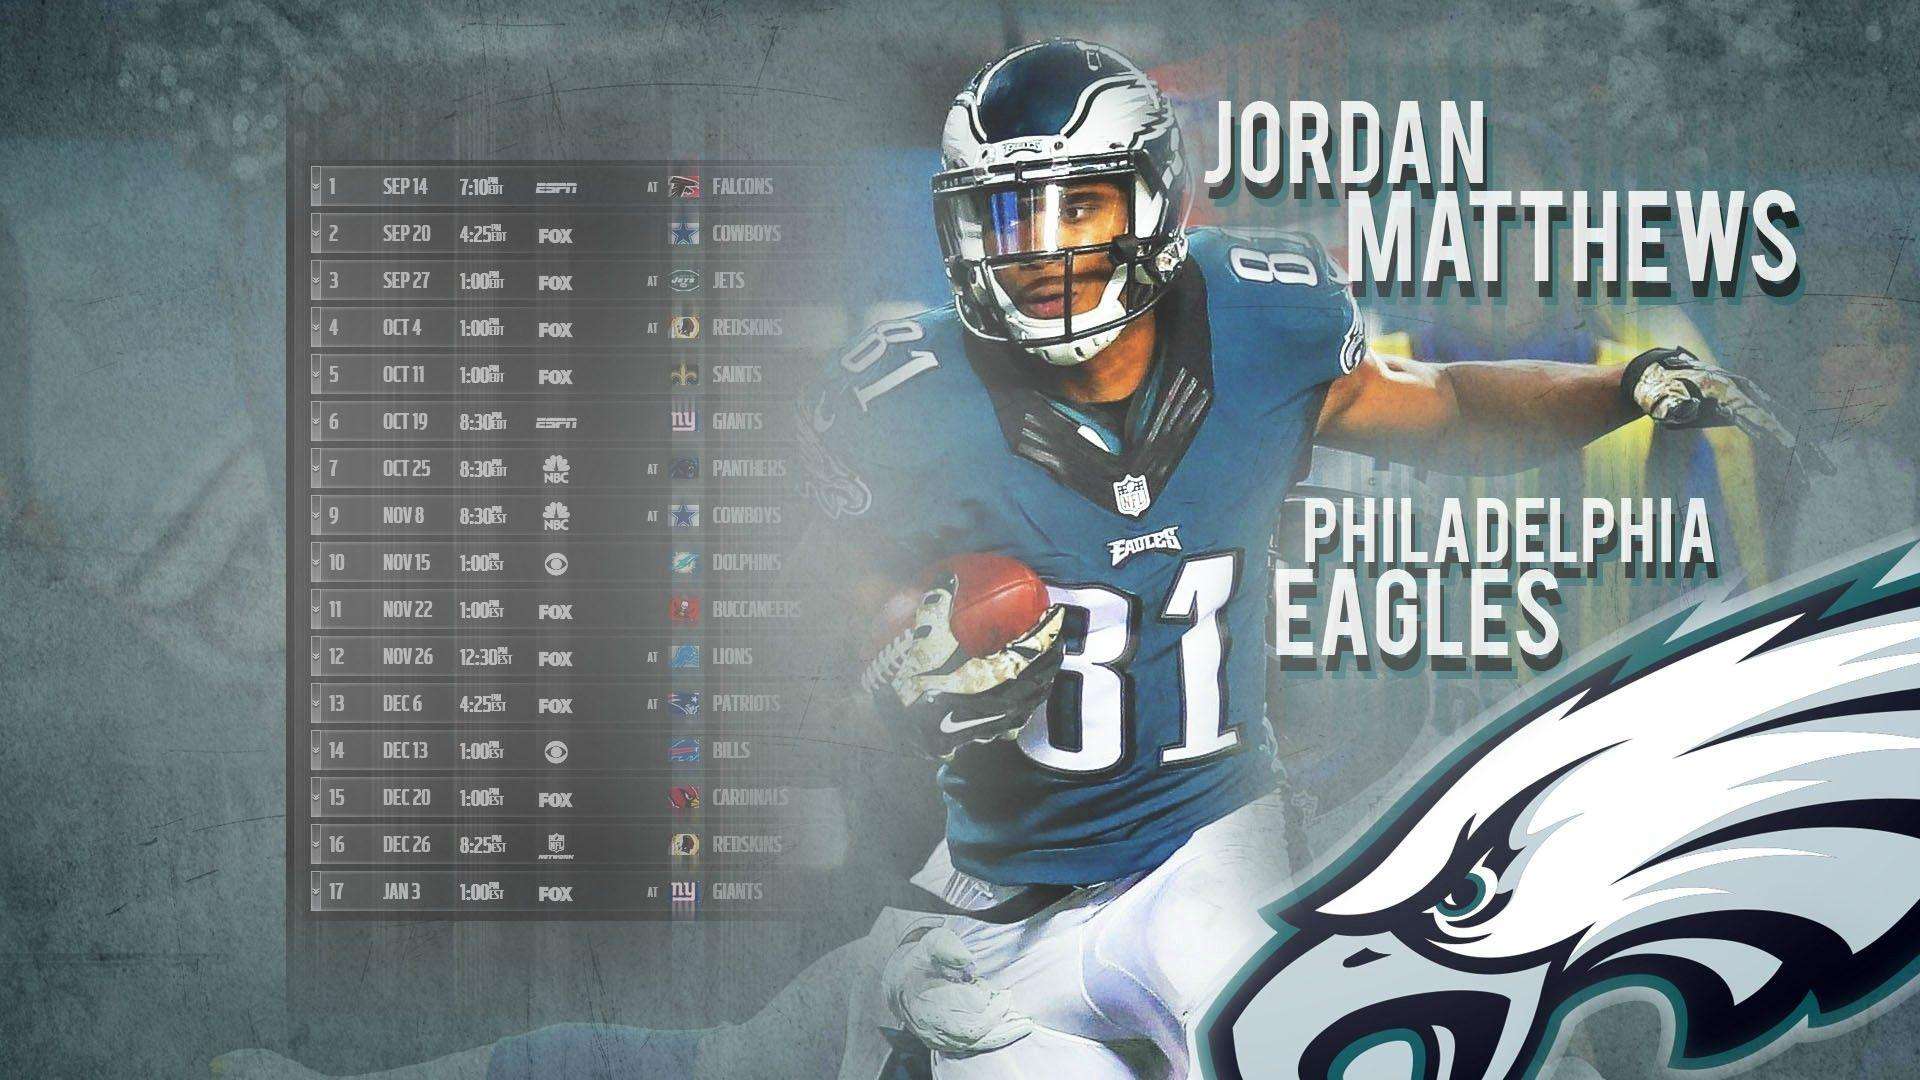 Matthews schedule wallpapers 2.0 : eagles